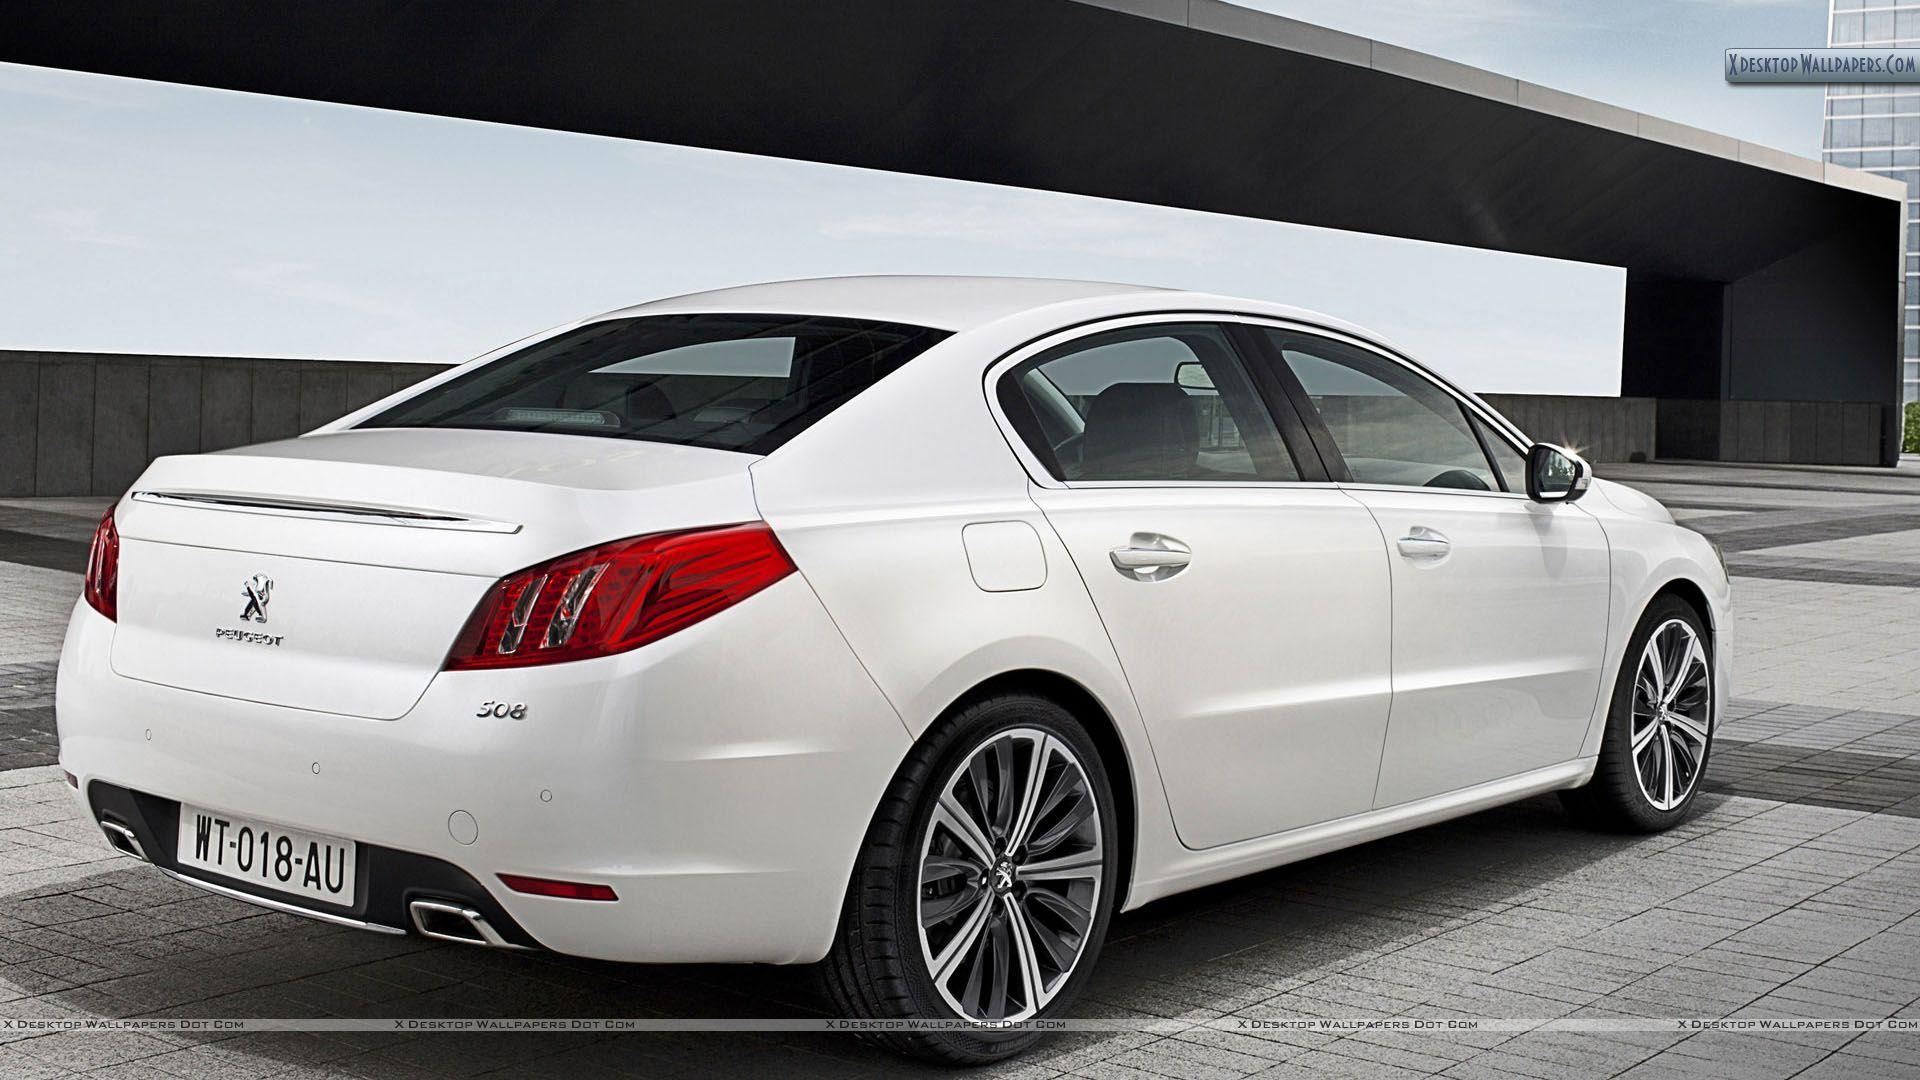 Peugeot 508 Saloon Back Pose in White Color Wallpapers